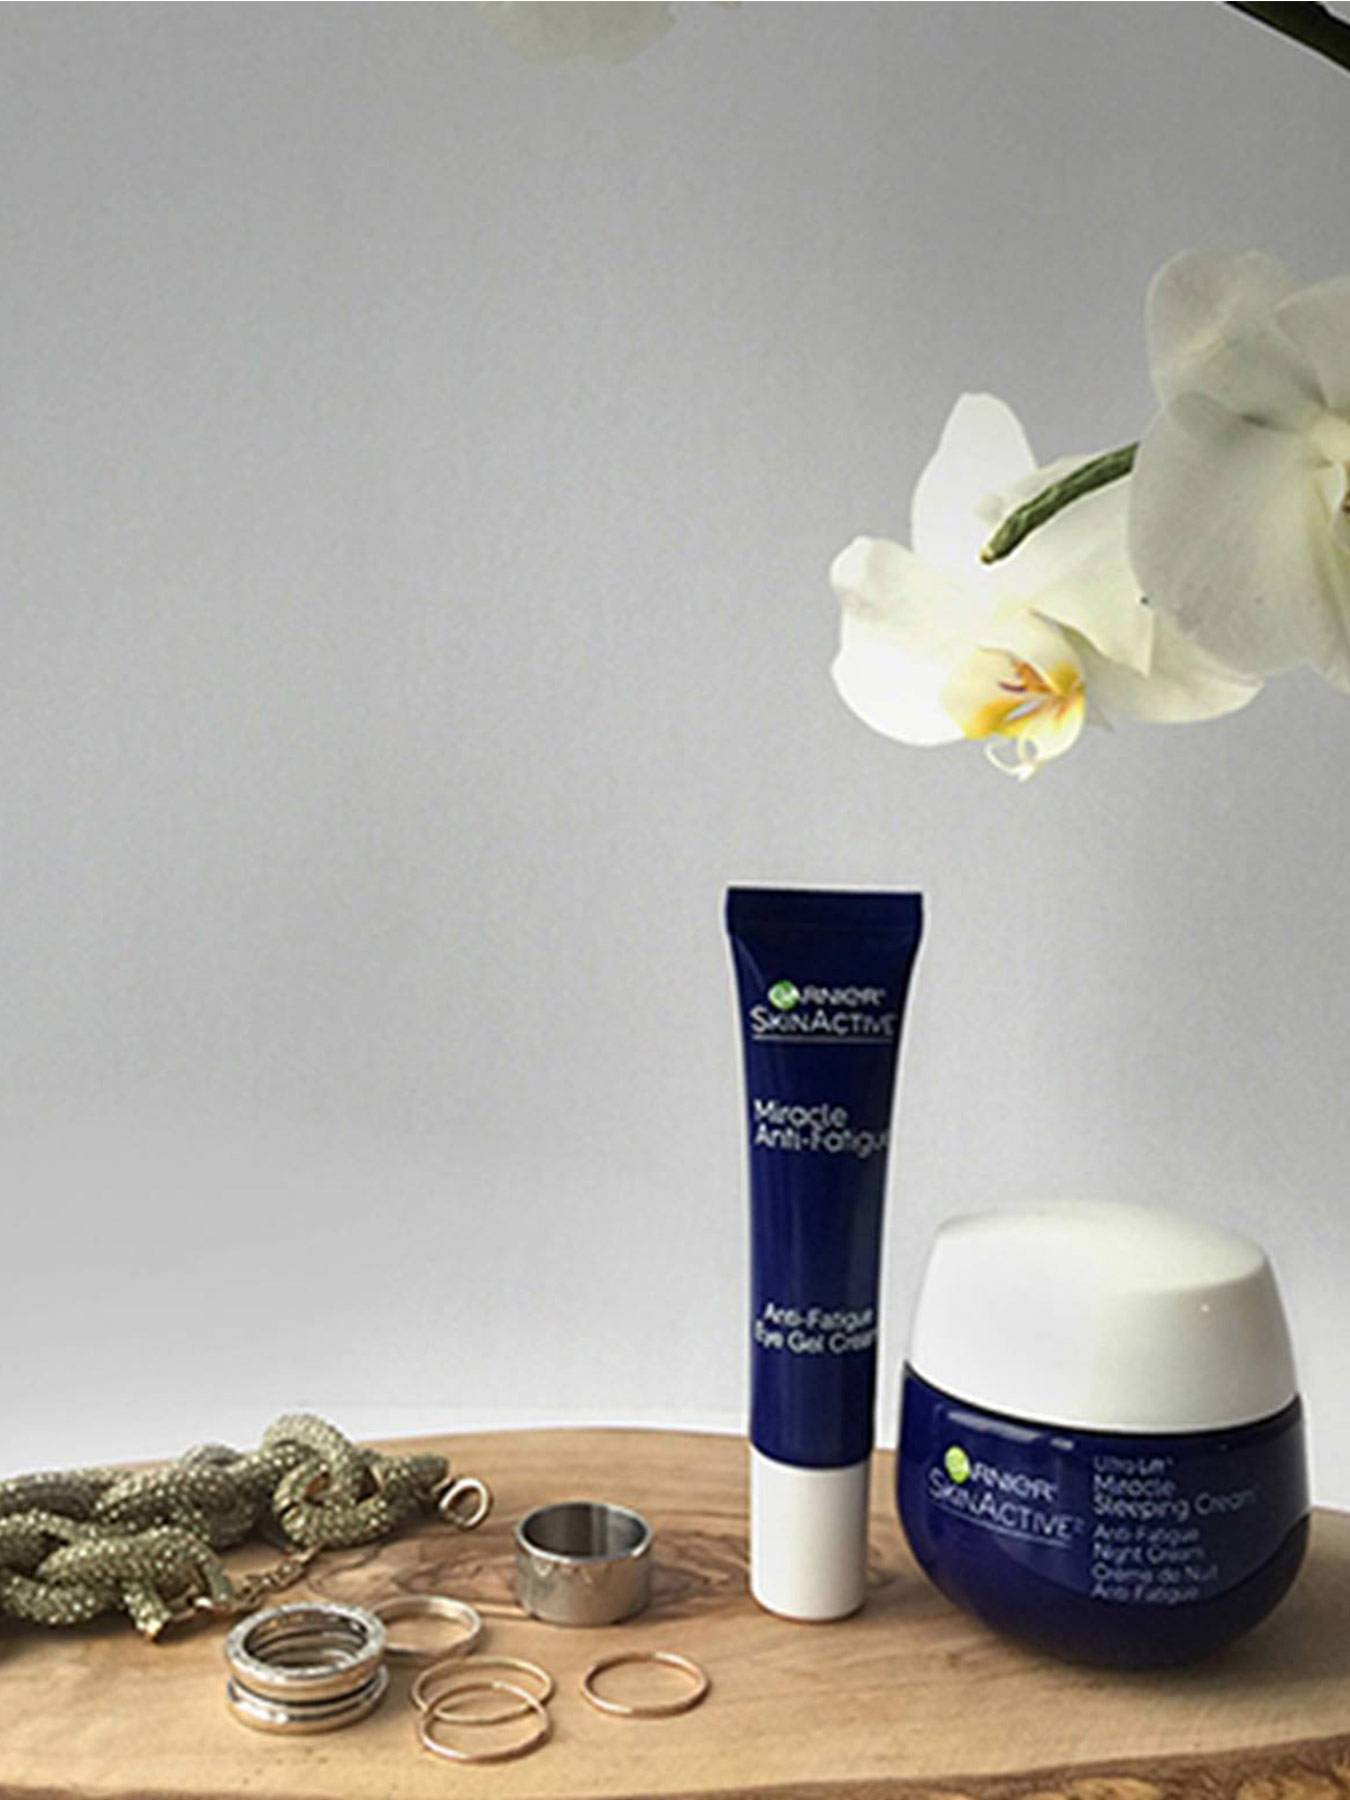 A tube of Miracle Anti-Fatigue Eye Gel Cream and a jar of Miracle Anti-Fatigue Night Cream sit on a wooden table beside various silver rings and a thick braided necklace on a wooden table beside a white orchid on a grey background.